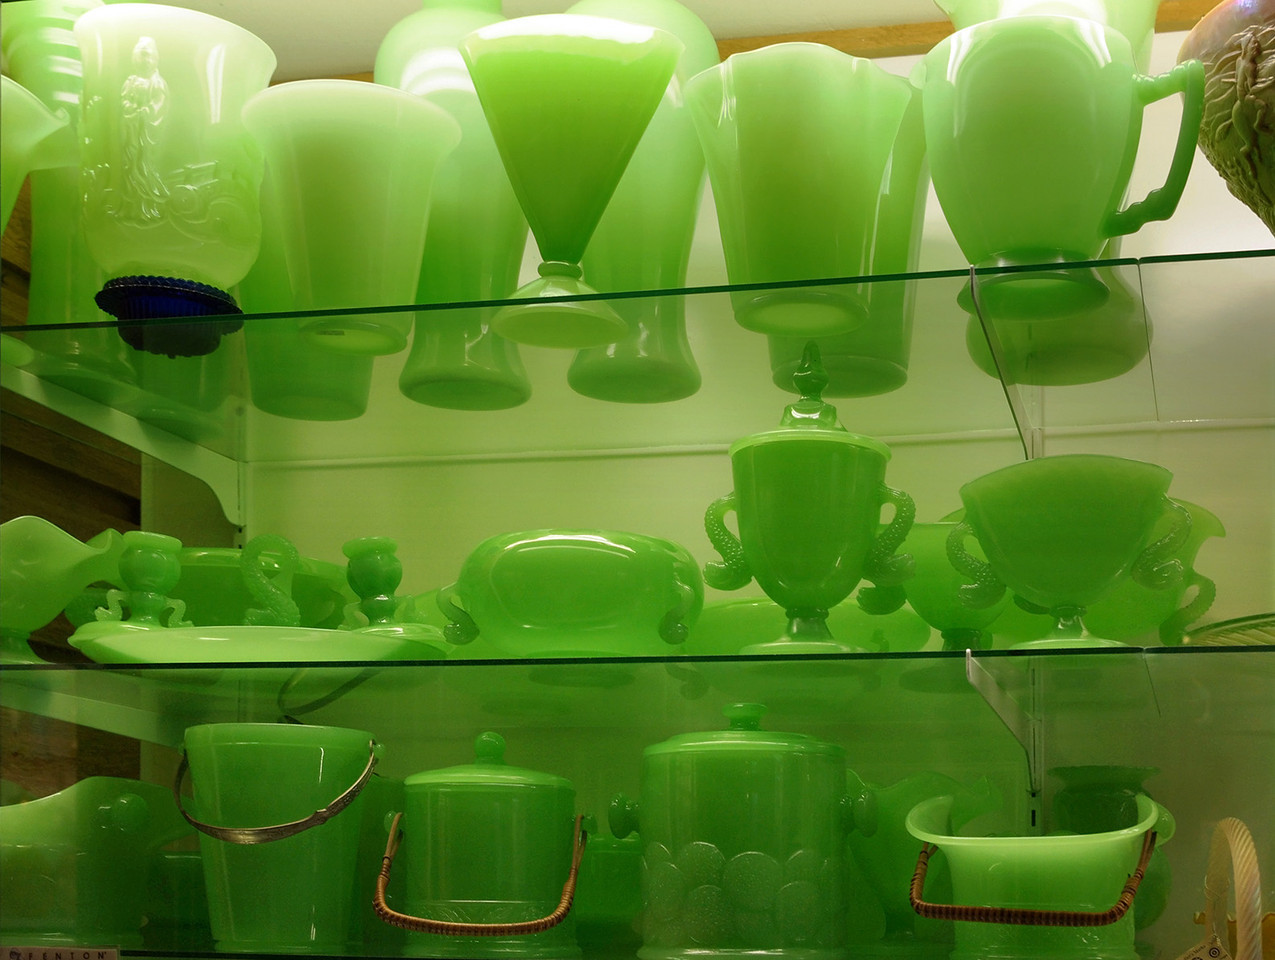 Green Fenton glass on display at the Golden Pioneer Museum on Highway 86 in Golden, Missouri.